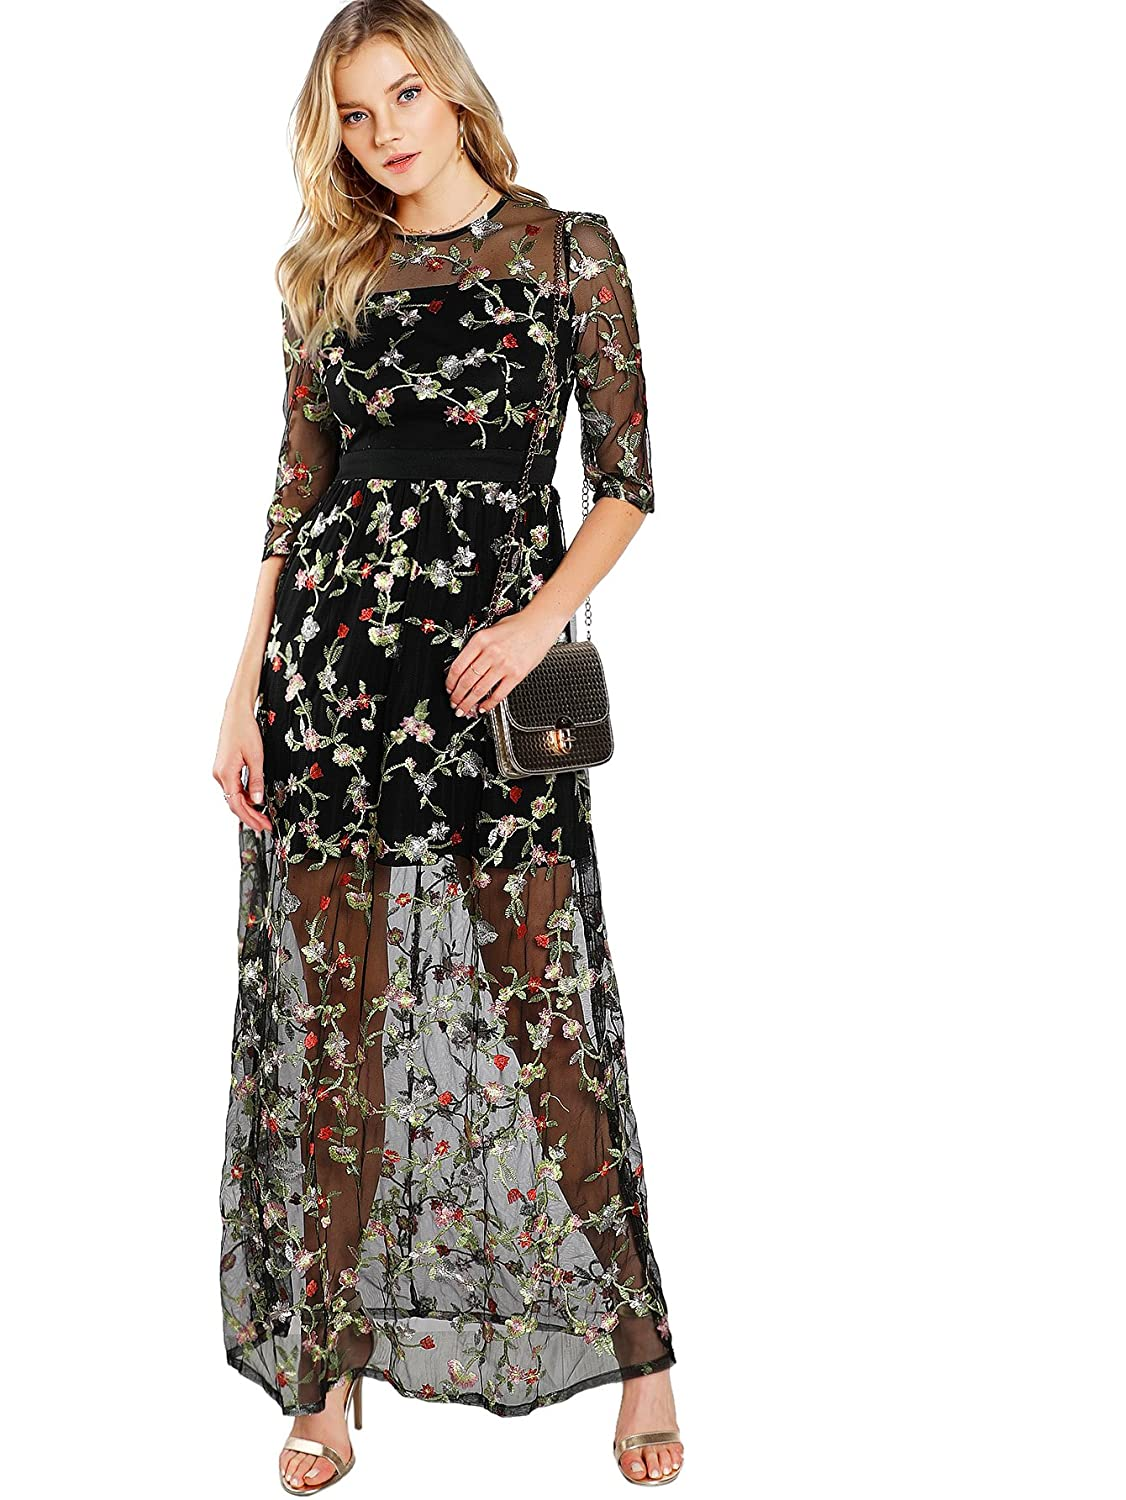 DIDK Women s A Line Floral Embroidery Mesh Sheer Evening Cocktail Dress at  Amazon Women s Clothing store  3c6a89f85